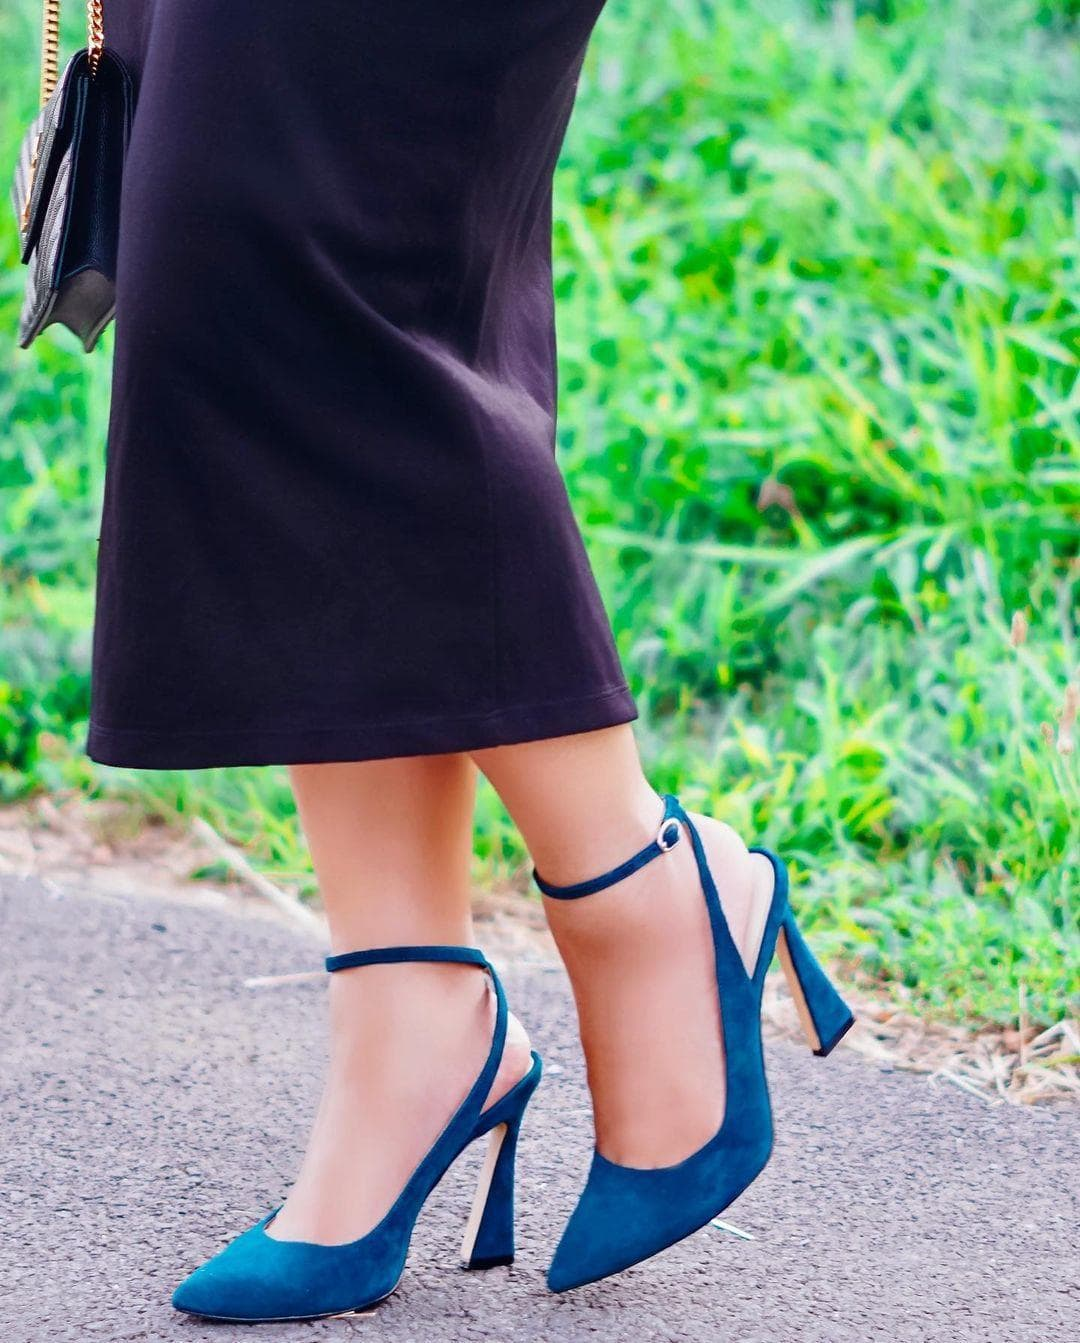 An elegant ankle strap and flared heel define this lofty teal suede pointy-toe dress pump from Nine West